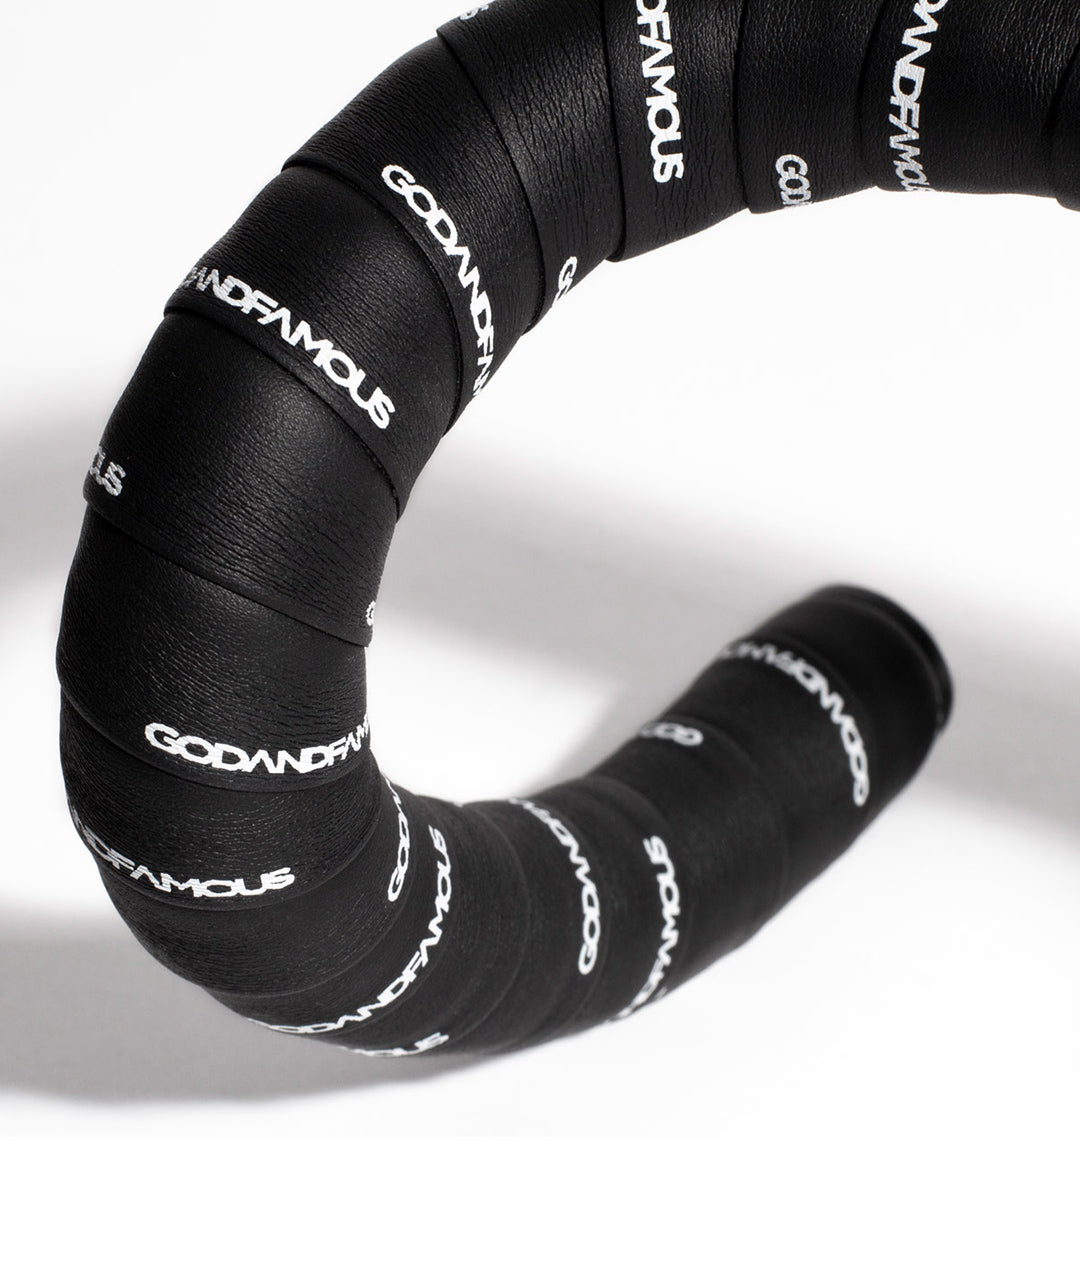 God and famous bar tape